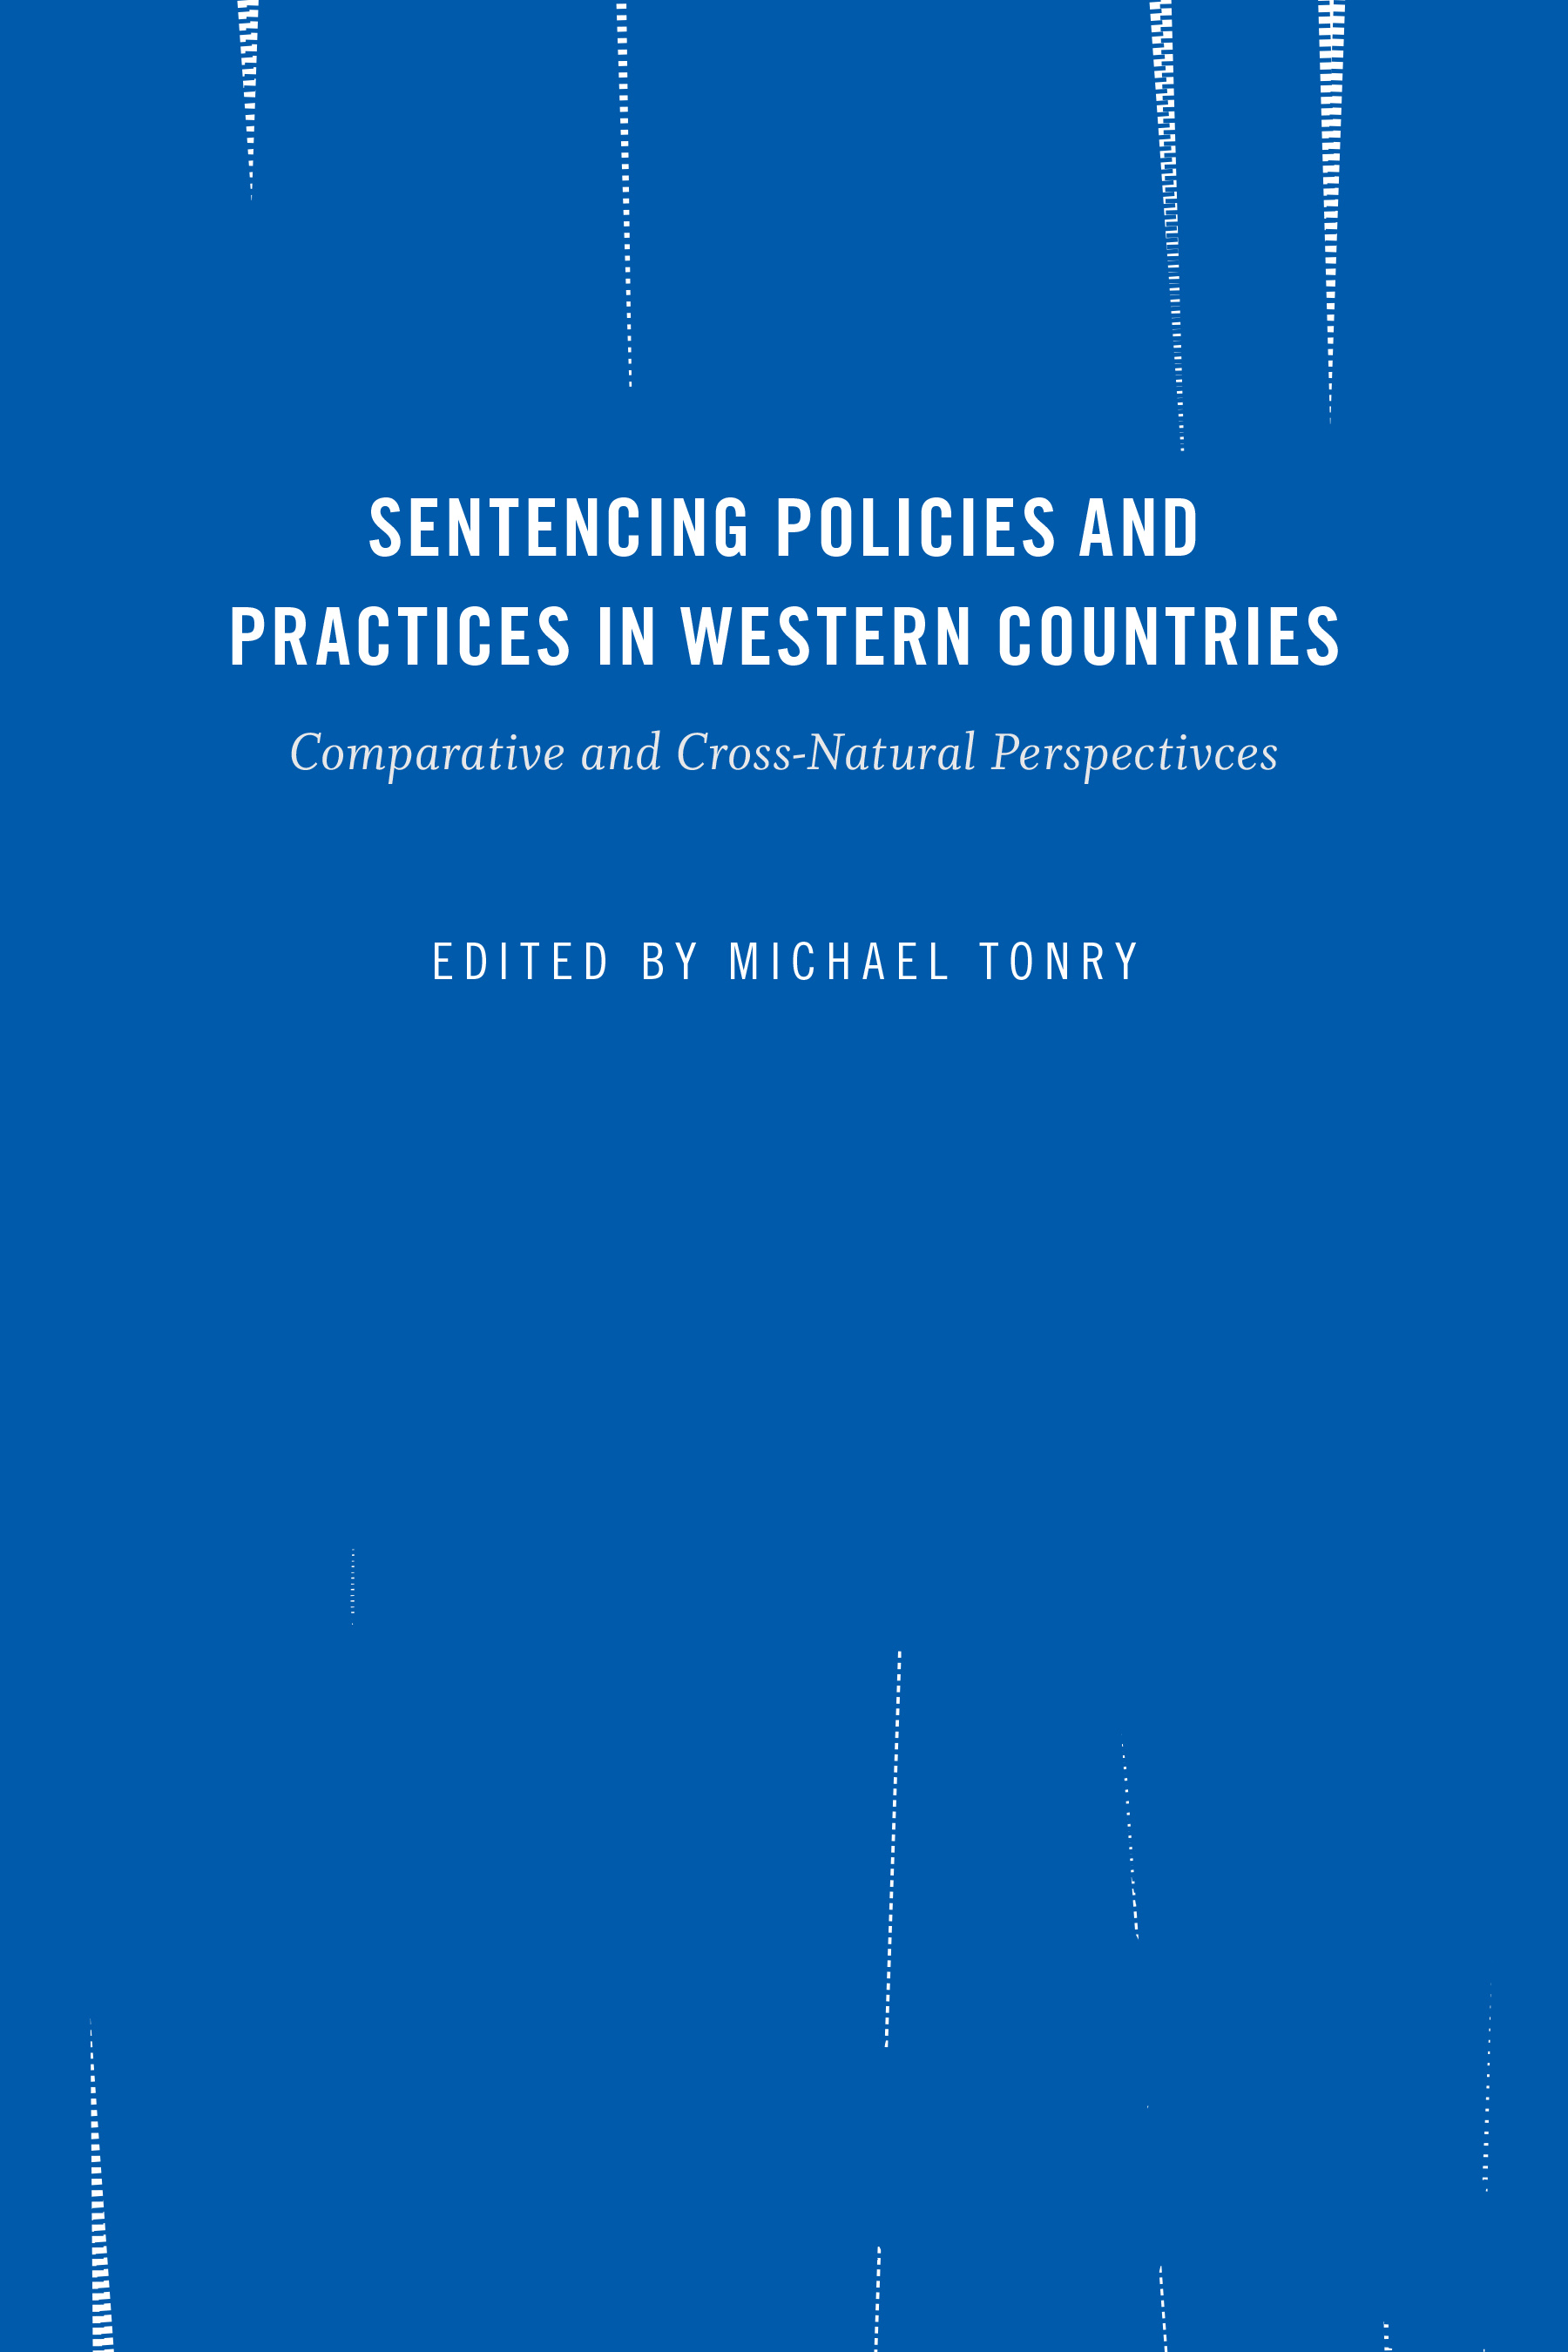 Crime and Justice, Volume 45: Sentencing Policies and Practices in Western Countries: Comparative and Cross-National Perspectives